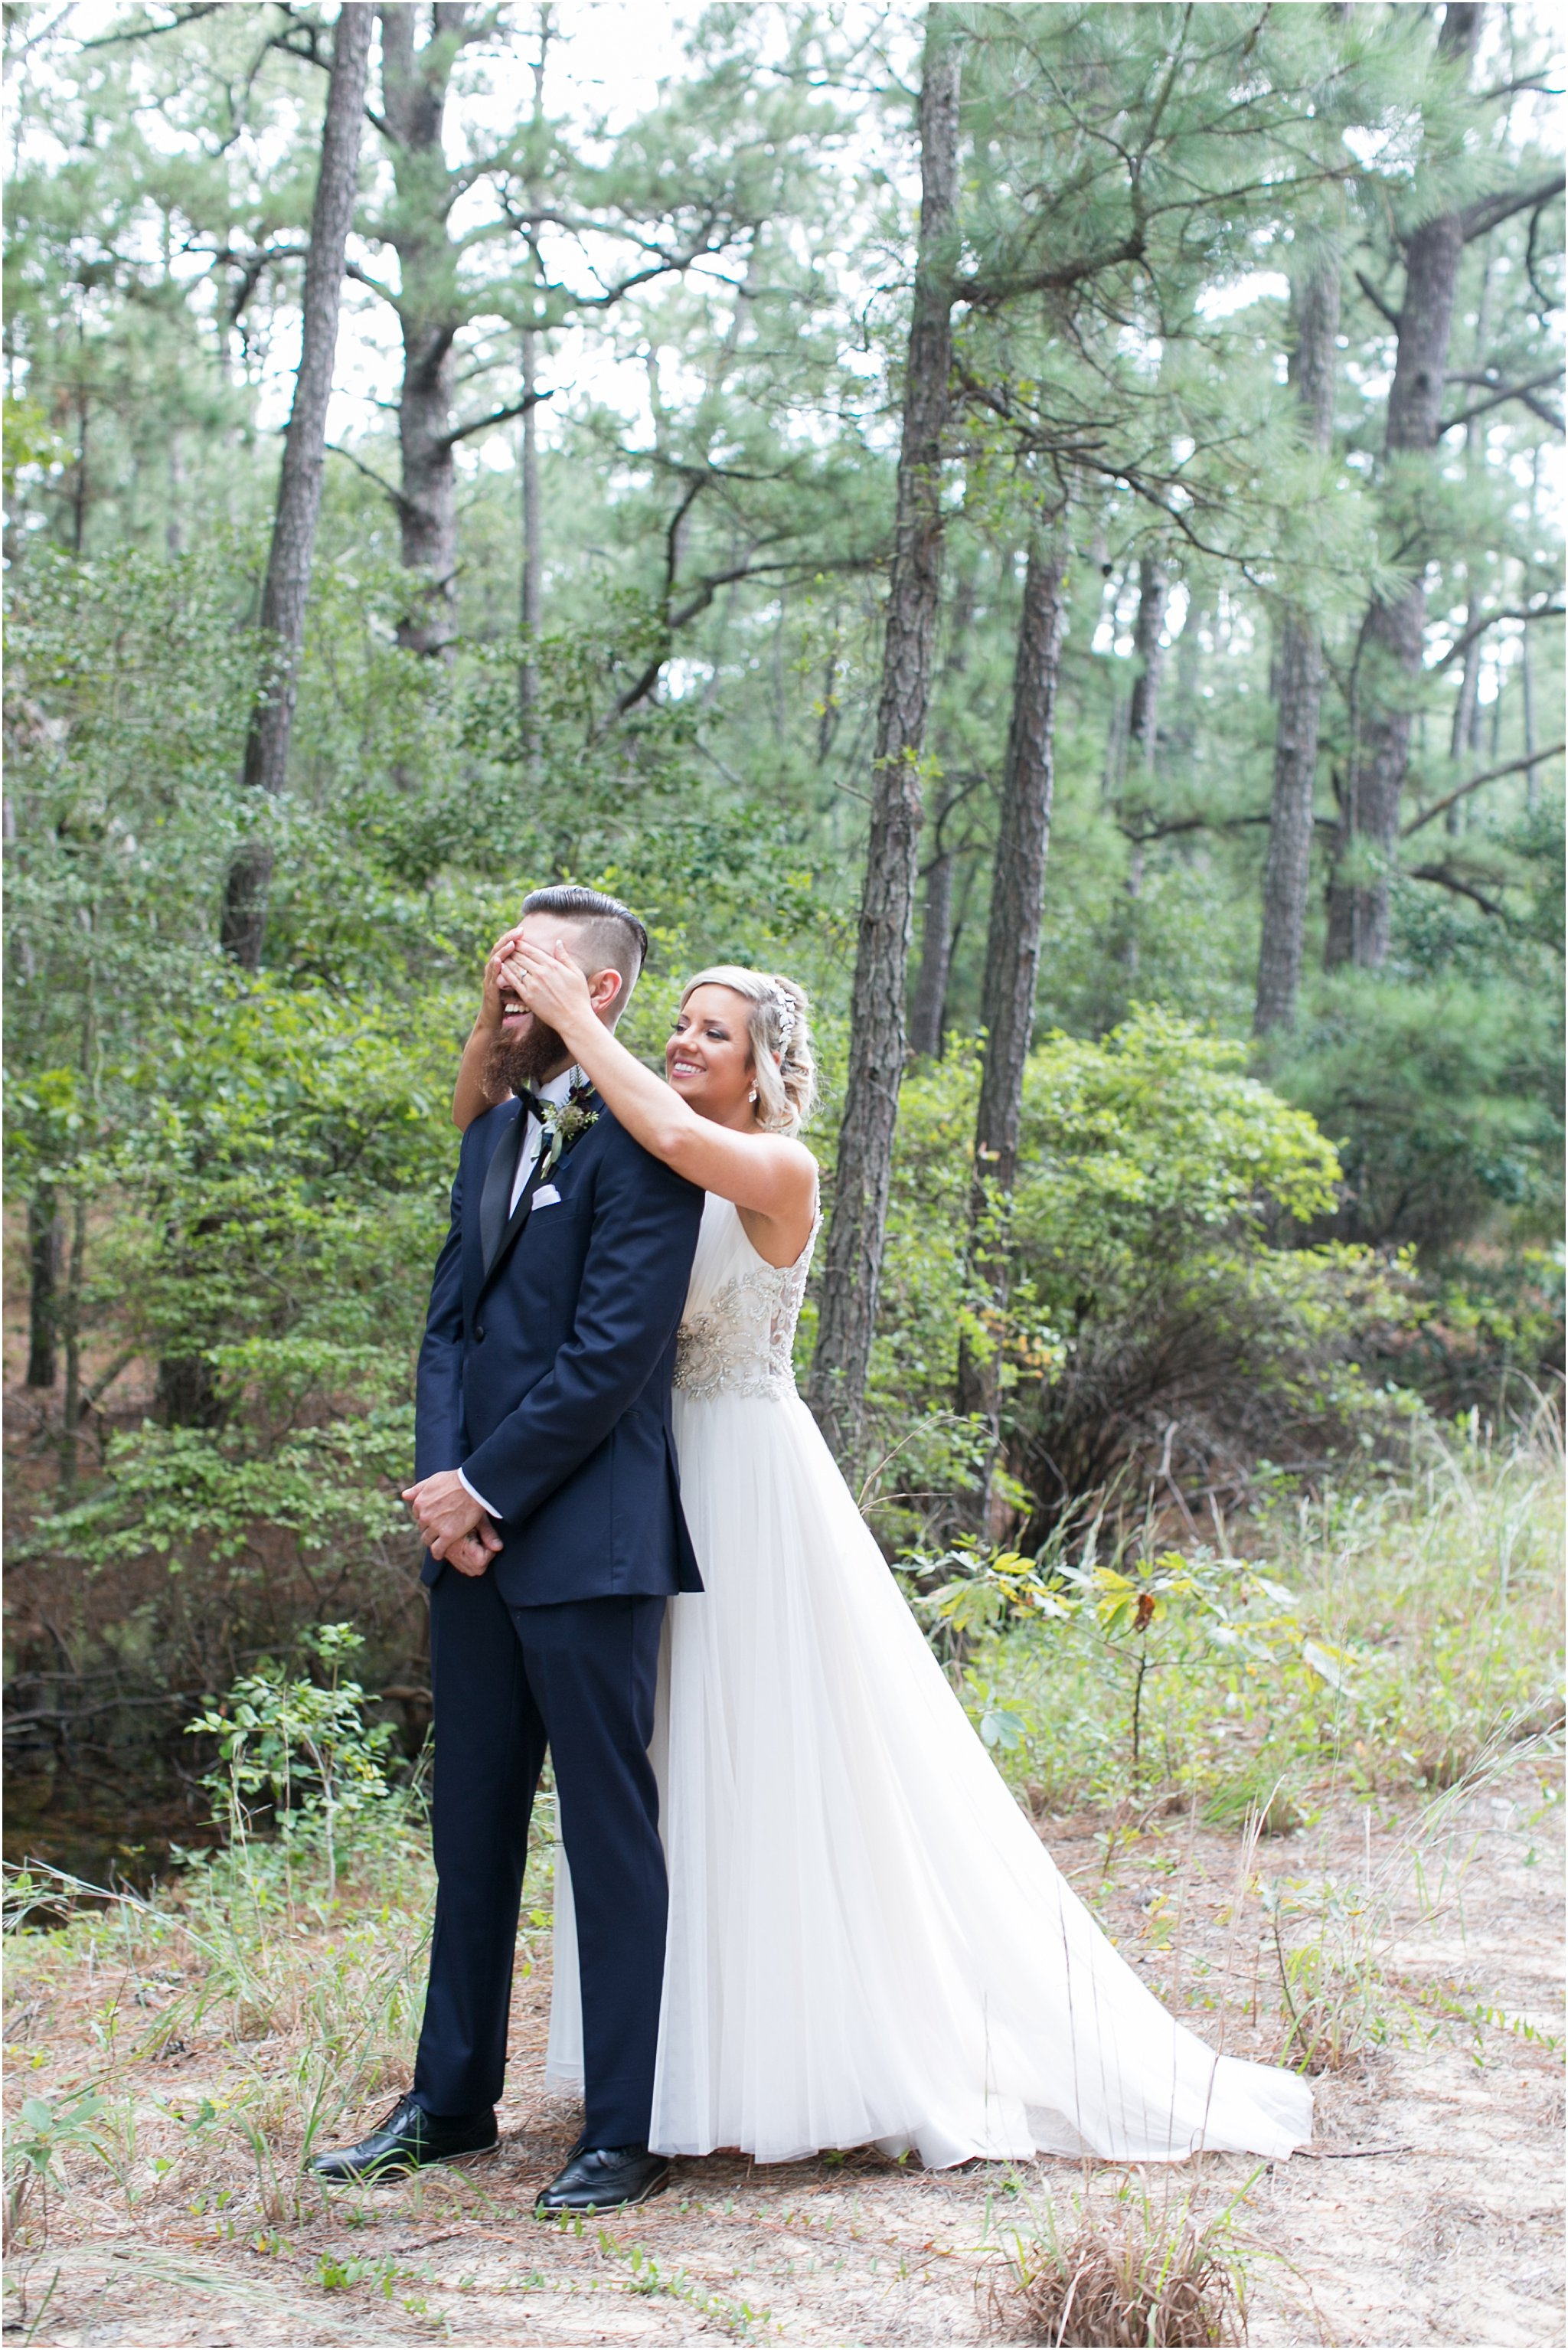 jessica_ryan_photography_virginia_wedding_photographer_candid_authentic_hampton_roads_wedding_photography_marina_shores_yacht_club_first_landing_state_park_woodland_theme_garden_3276